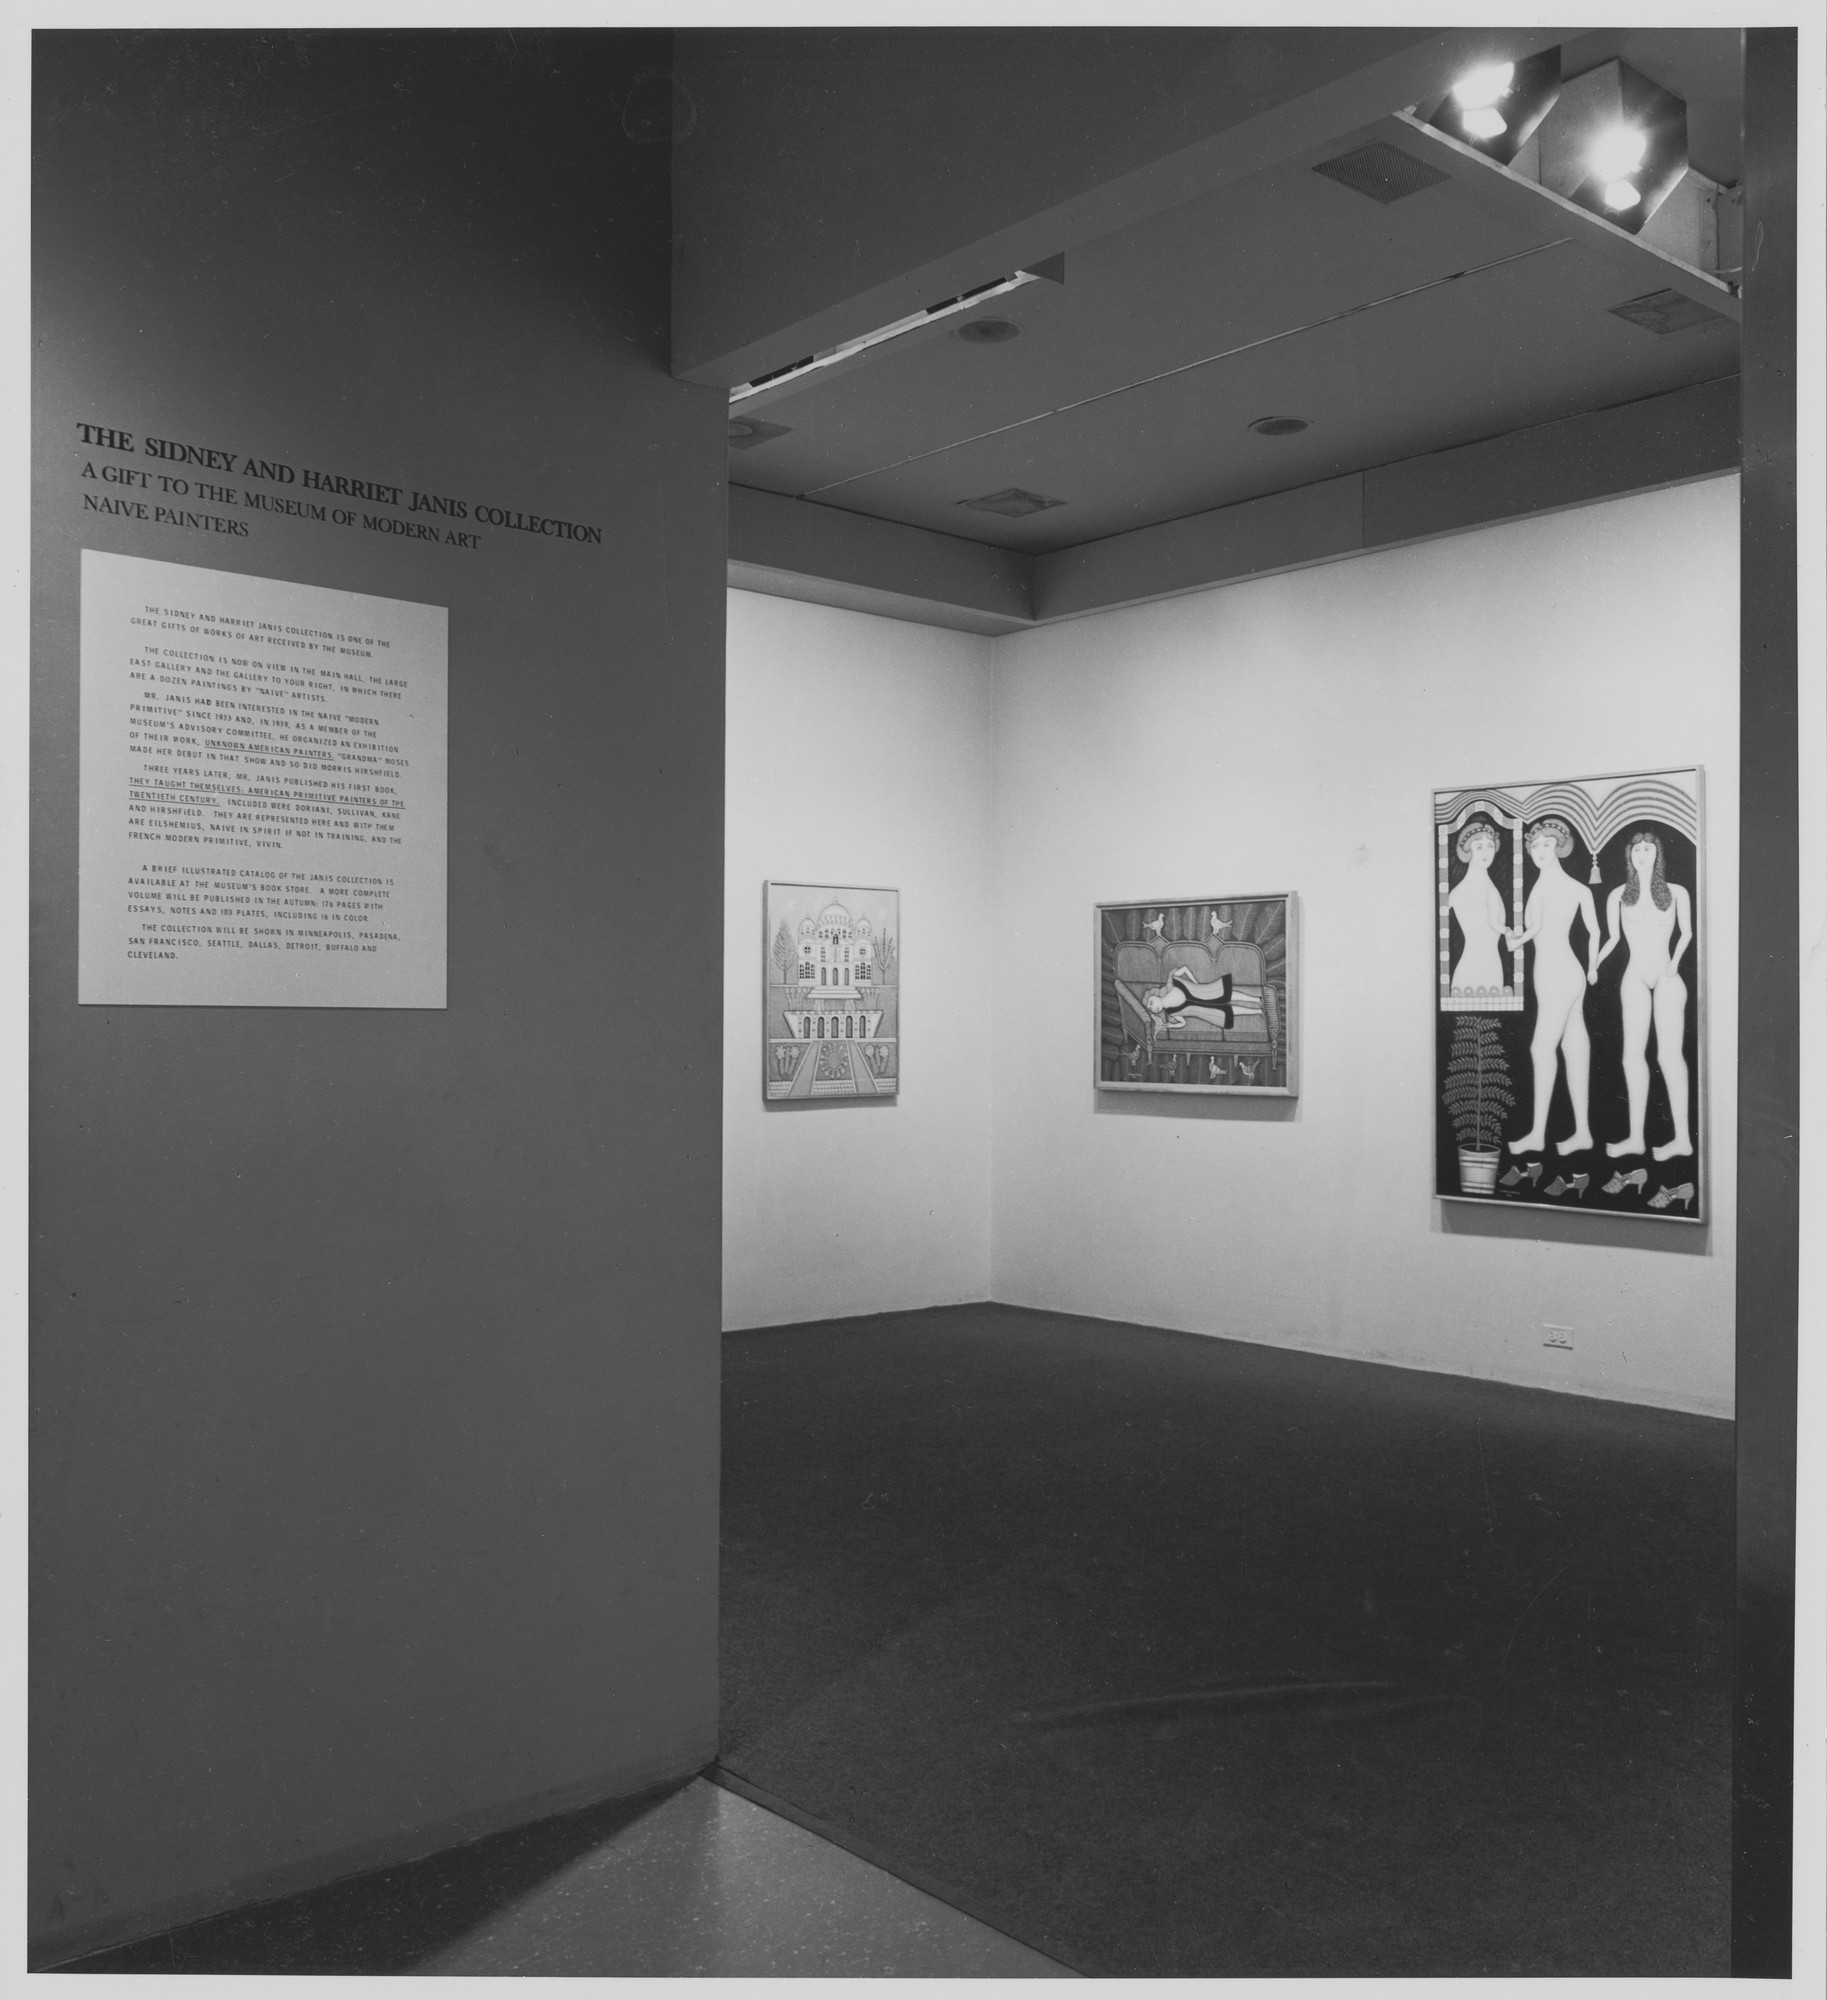 "Installation view of the exhibition, ""The Sidney and Harriet Janis Collection."" January 17, 1968–March 4, 1968. Photographic Archive. The Museum of Modern Art Archives, New York. IN848.1. Photograph by James Mathews."